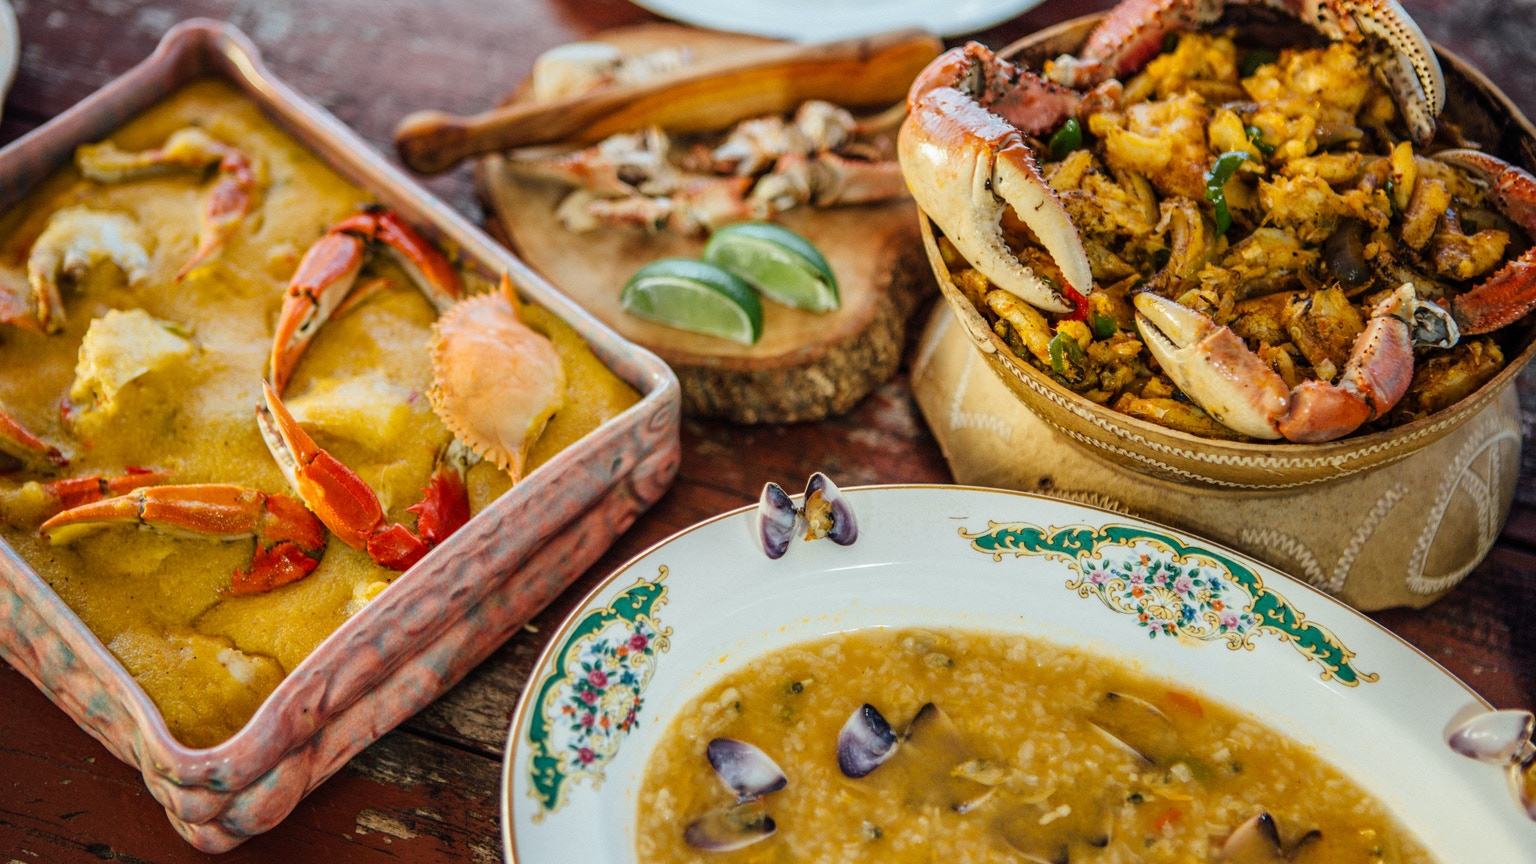 Cuban food stories a feature documentary by asori soto for Authentic cuban cuisine